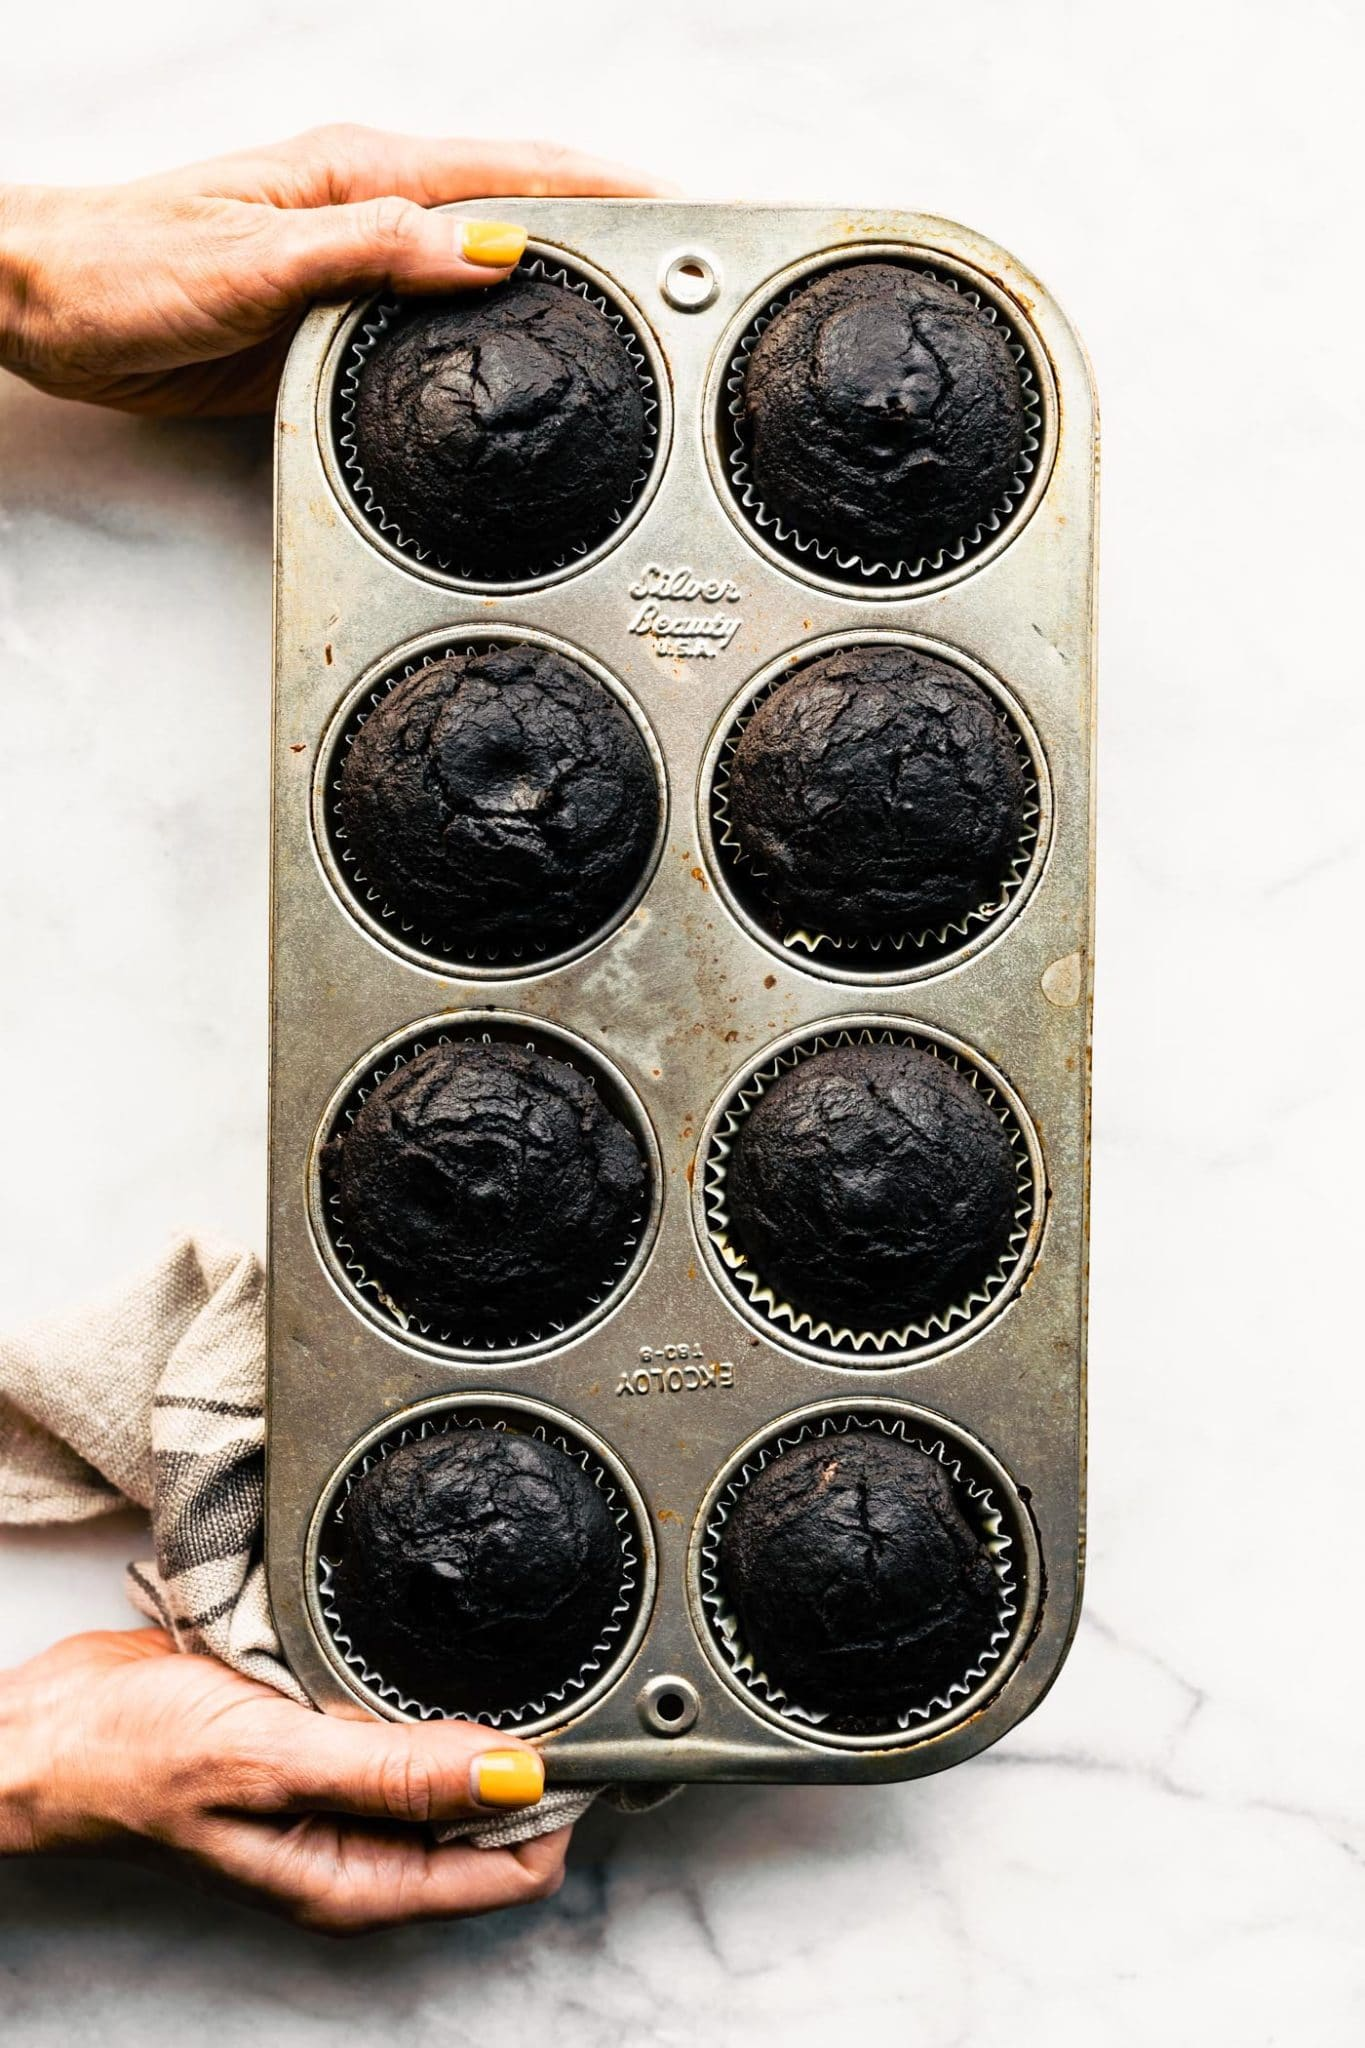 two hands holding a muffin tin full of baked egg free chocolate muffins